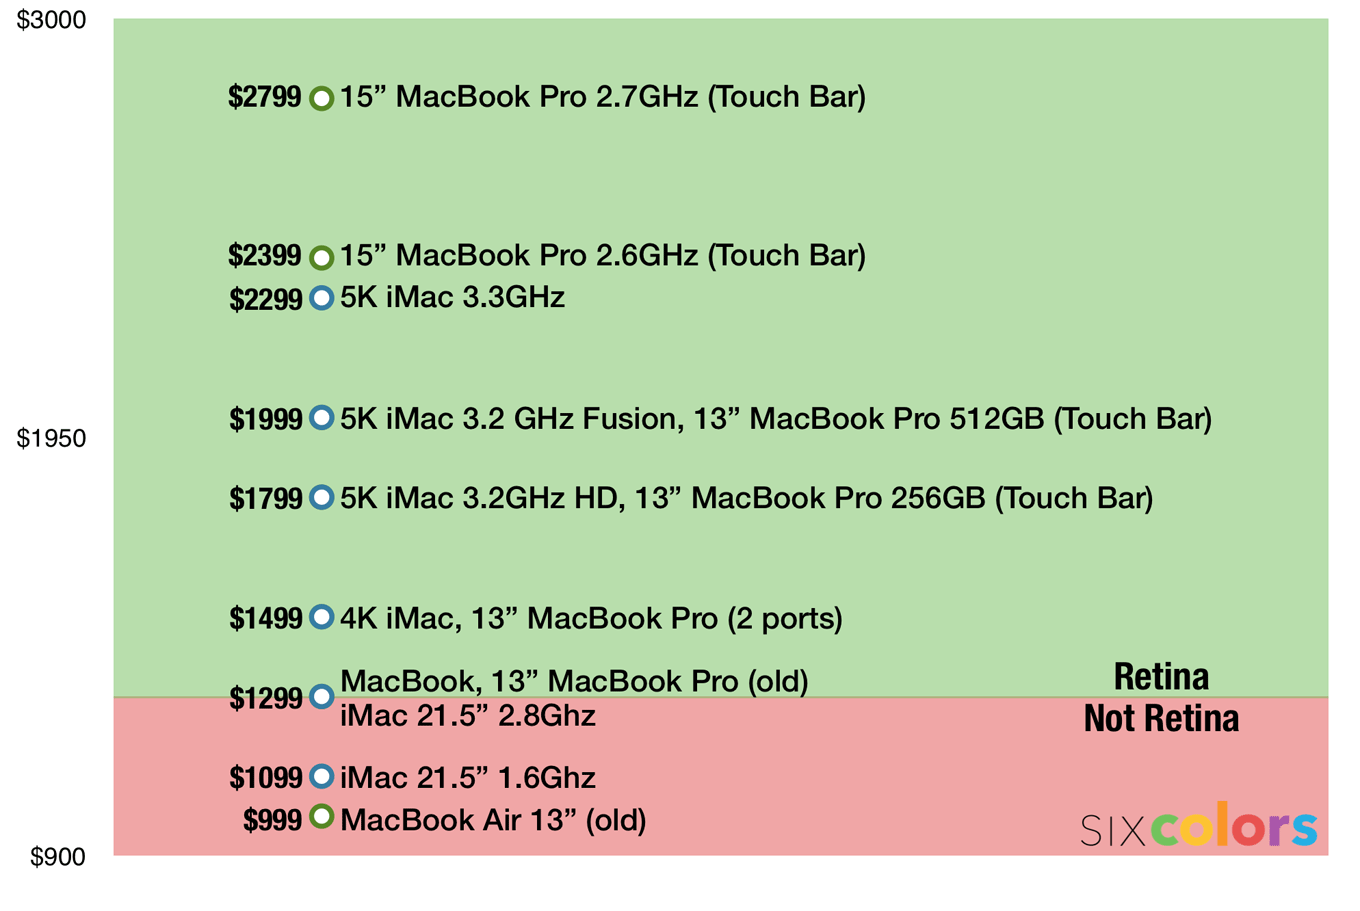 Chart of Mac prices with a line of demarcation at $1299.